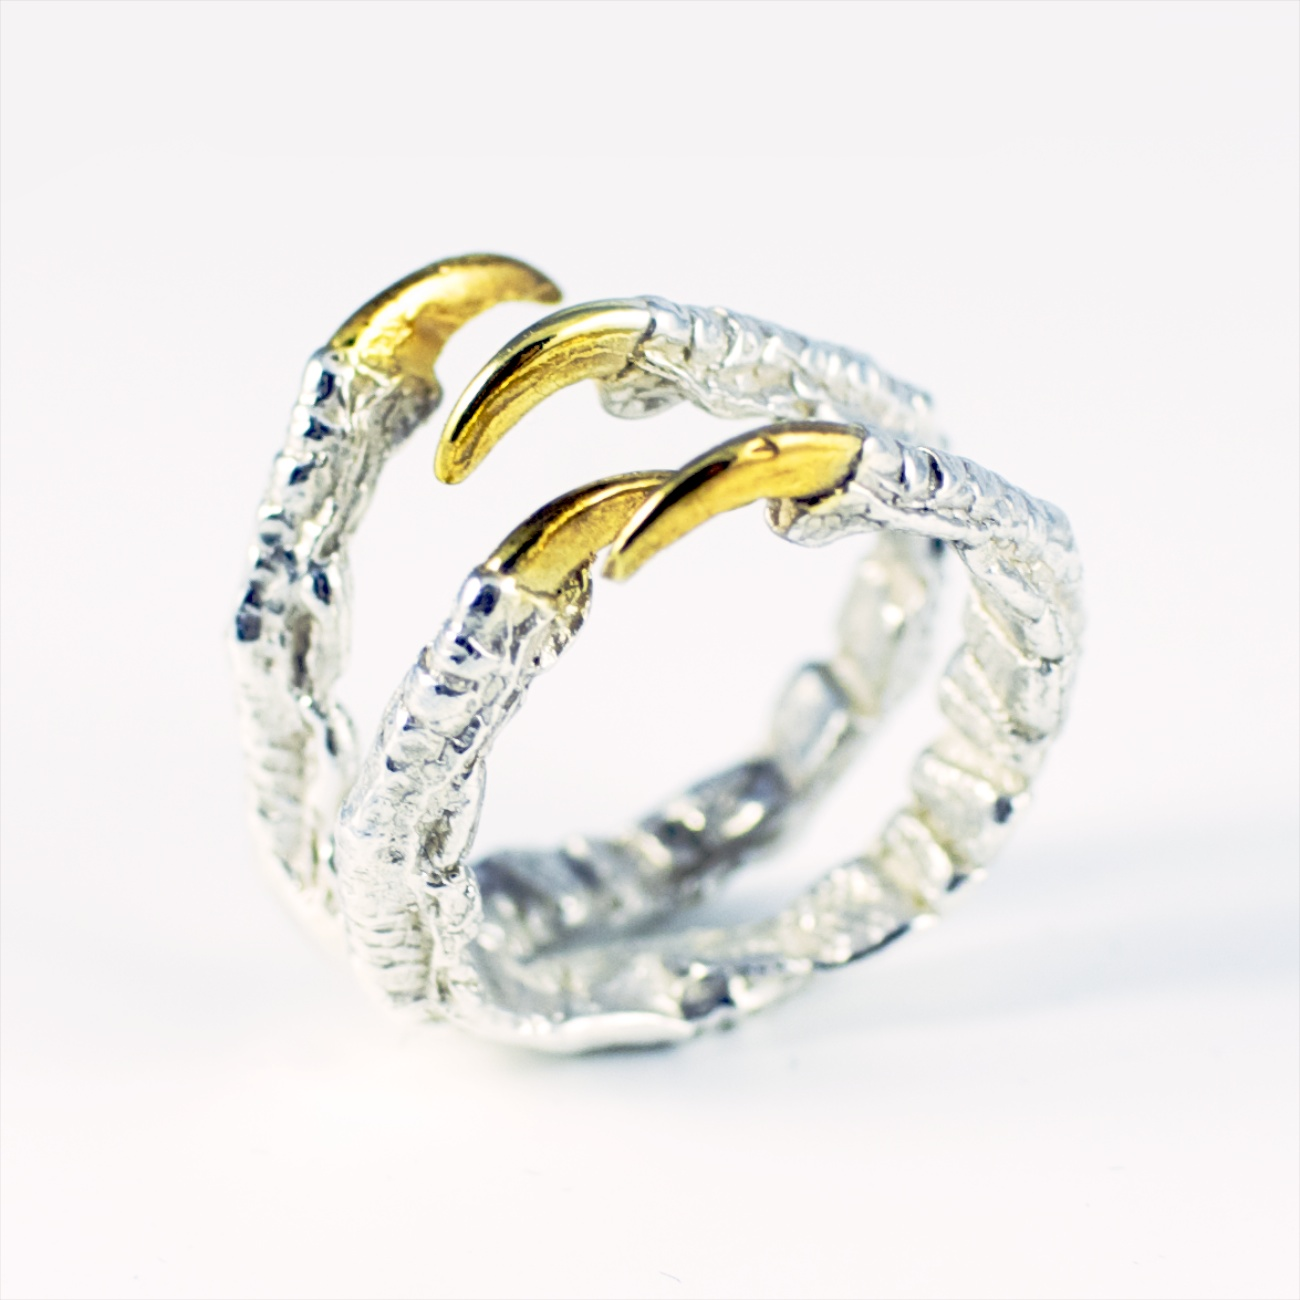 custom 4 claw ring with gold vermeil